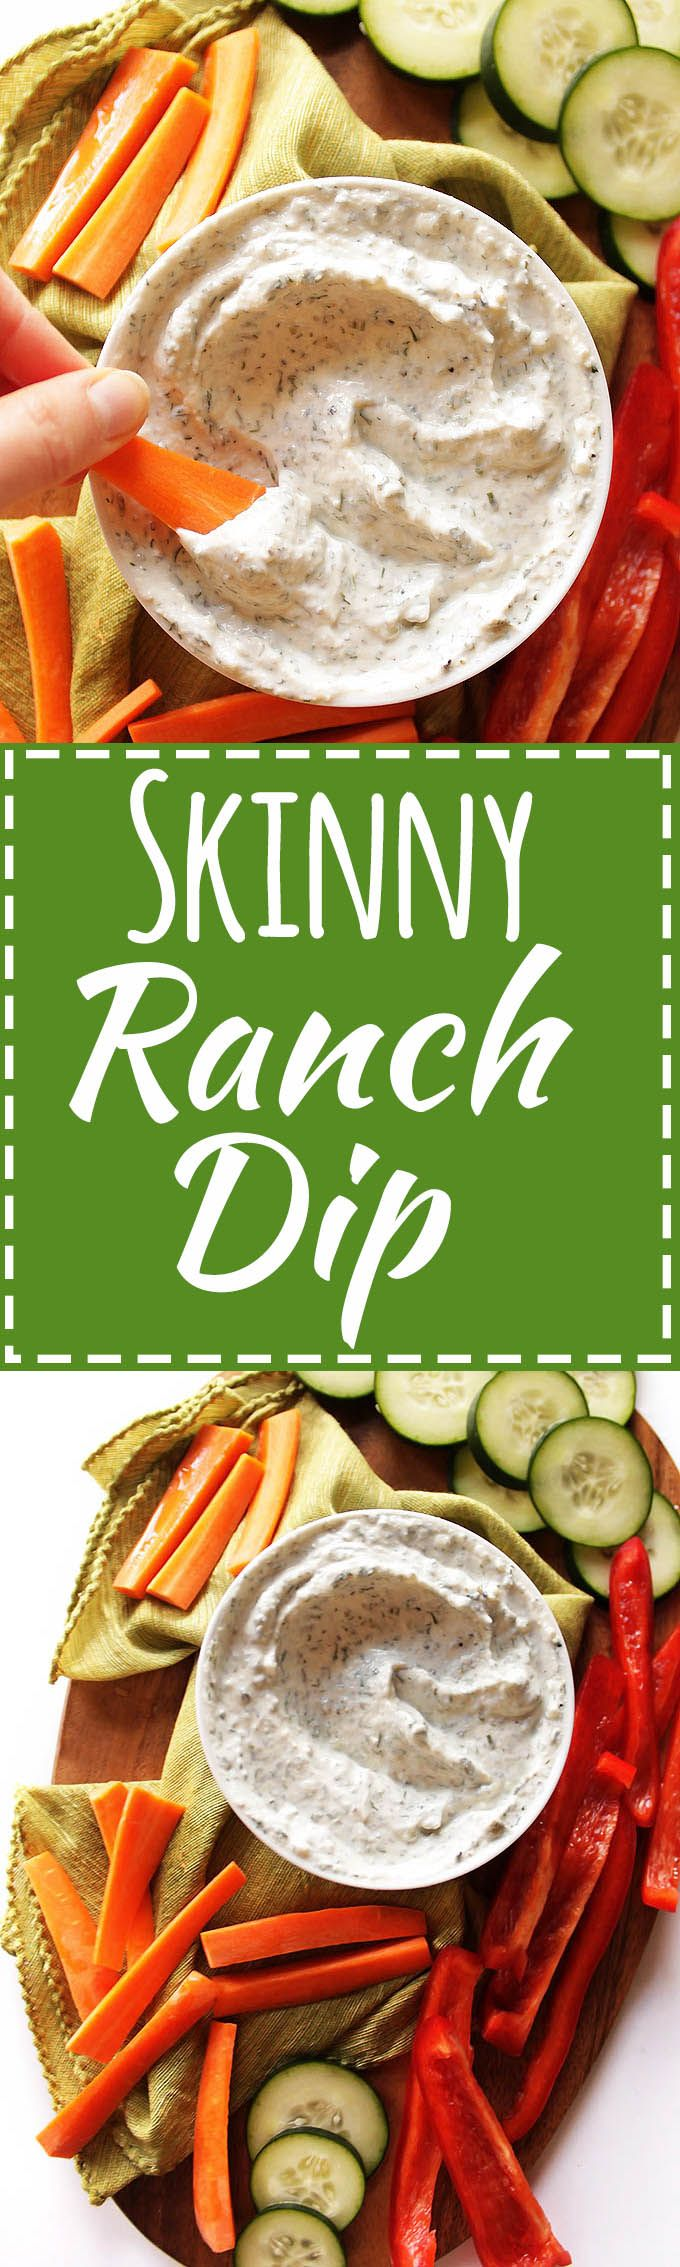 Skinny Ranch Dip - Thick, creamy HEALTHY ranch dip recipe that tastes delicious! It's made with nonfat Greek yogurt that has plenty of protein and live active cultures. It only takes 10 minutes to mix up! Plus it's perfect for any veggie platter! Gluten Free | robustrecipes.com